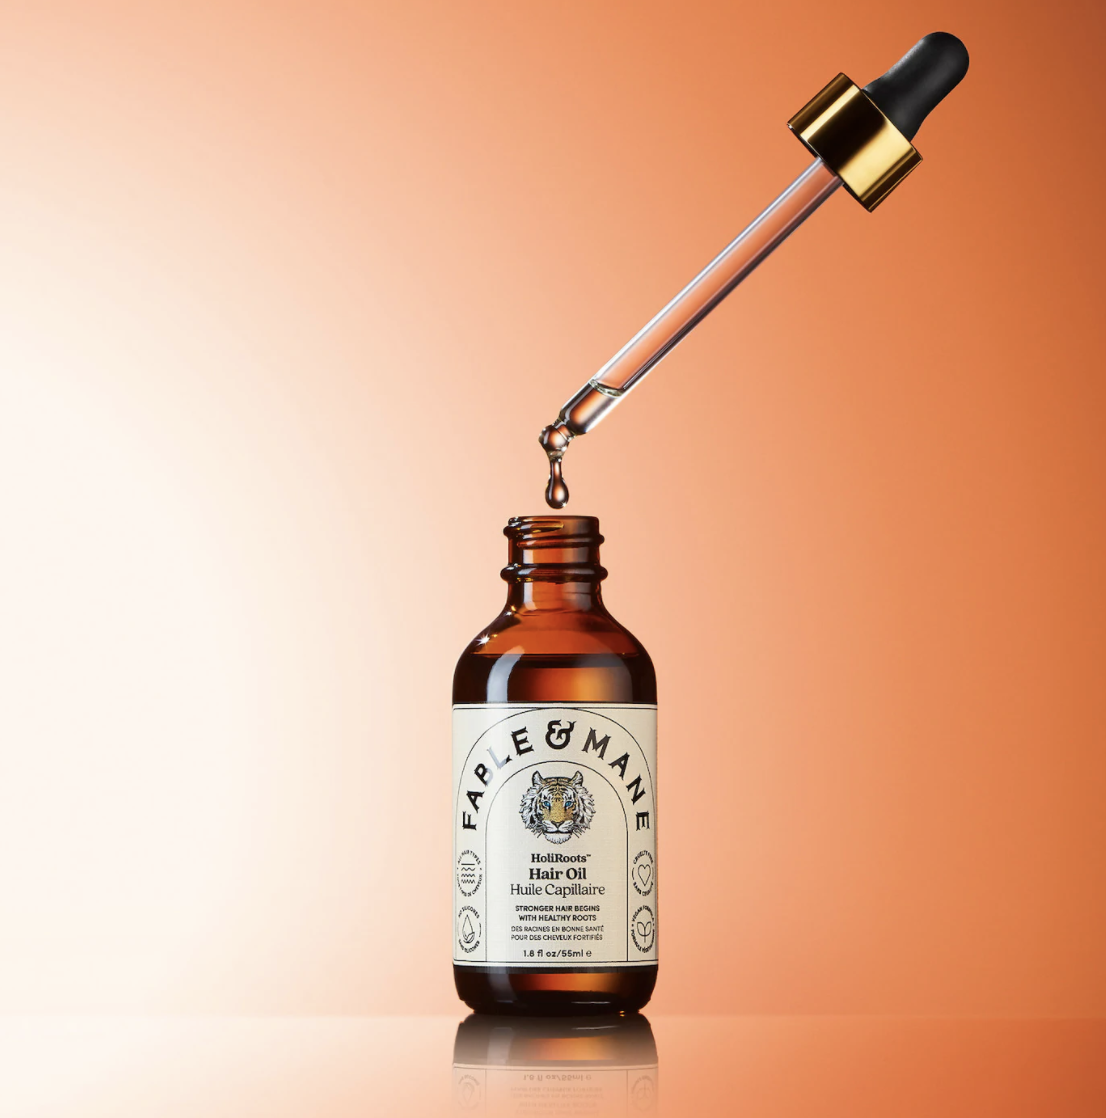 the bottle of the hair oil with a dropper on top